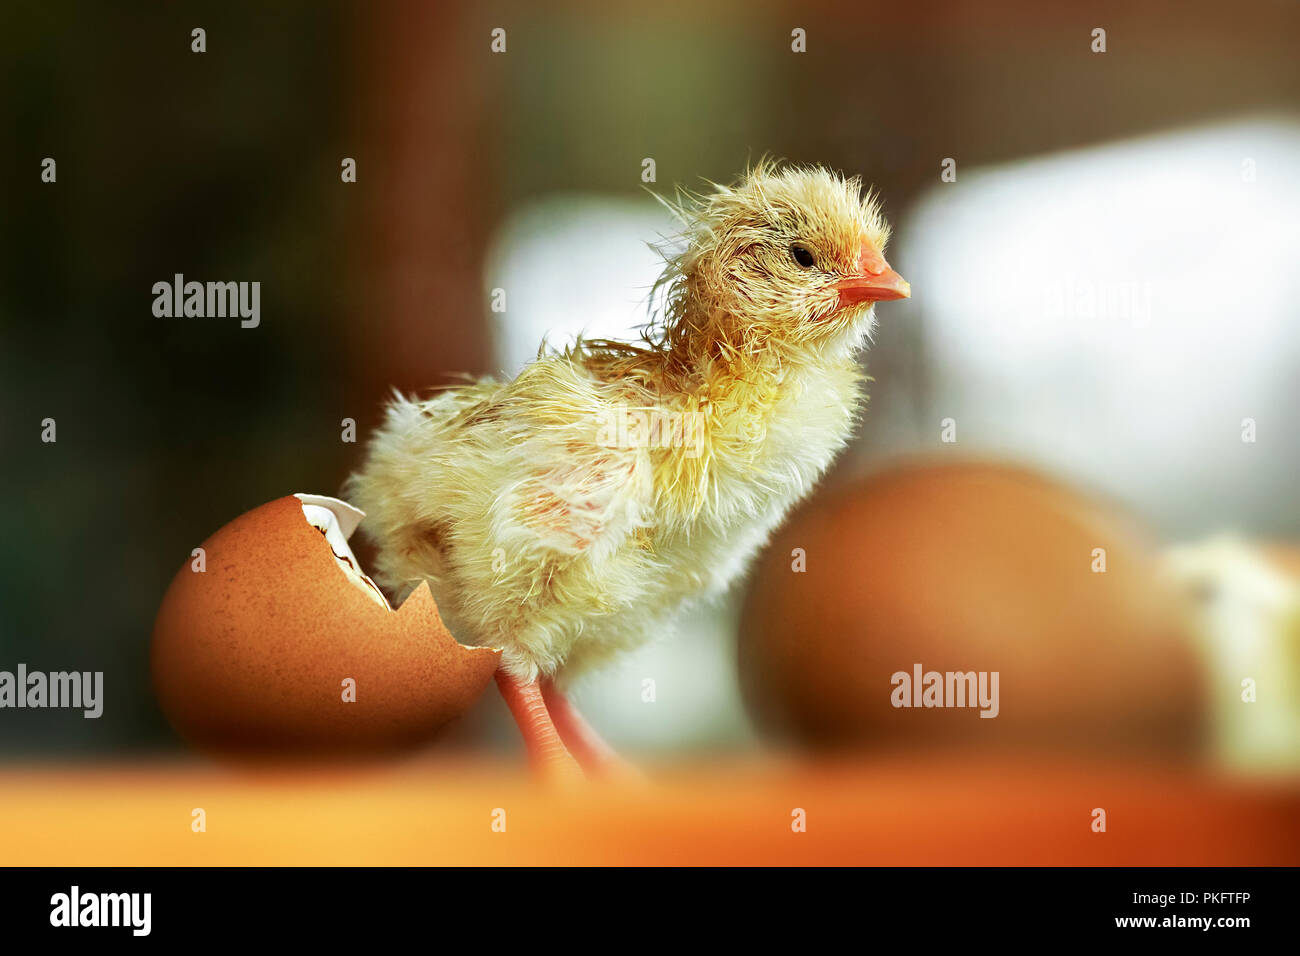 Chicken (Gallus gallus domesticus), chick hatching in the incubator, Germany - Stock Image